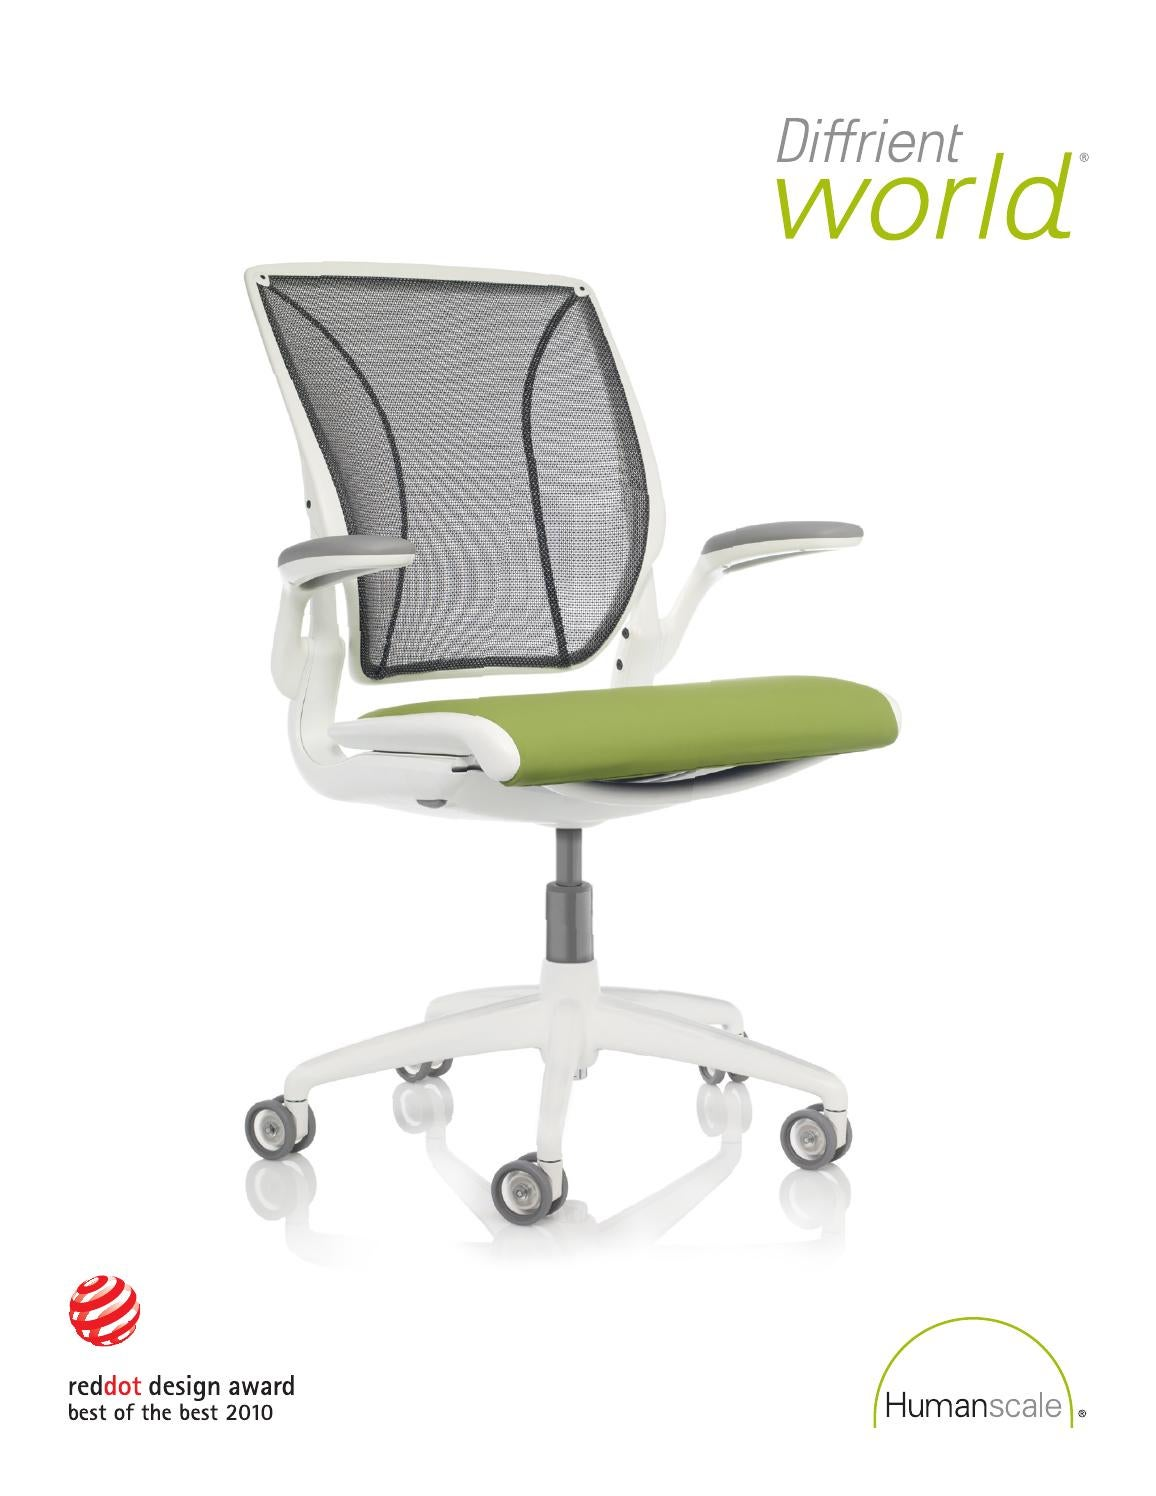 Humanscale Diffrient World Chair Xtra Humanscale Diffrient World Chair By Xtra Furniture